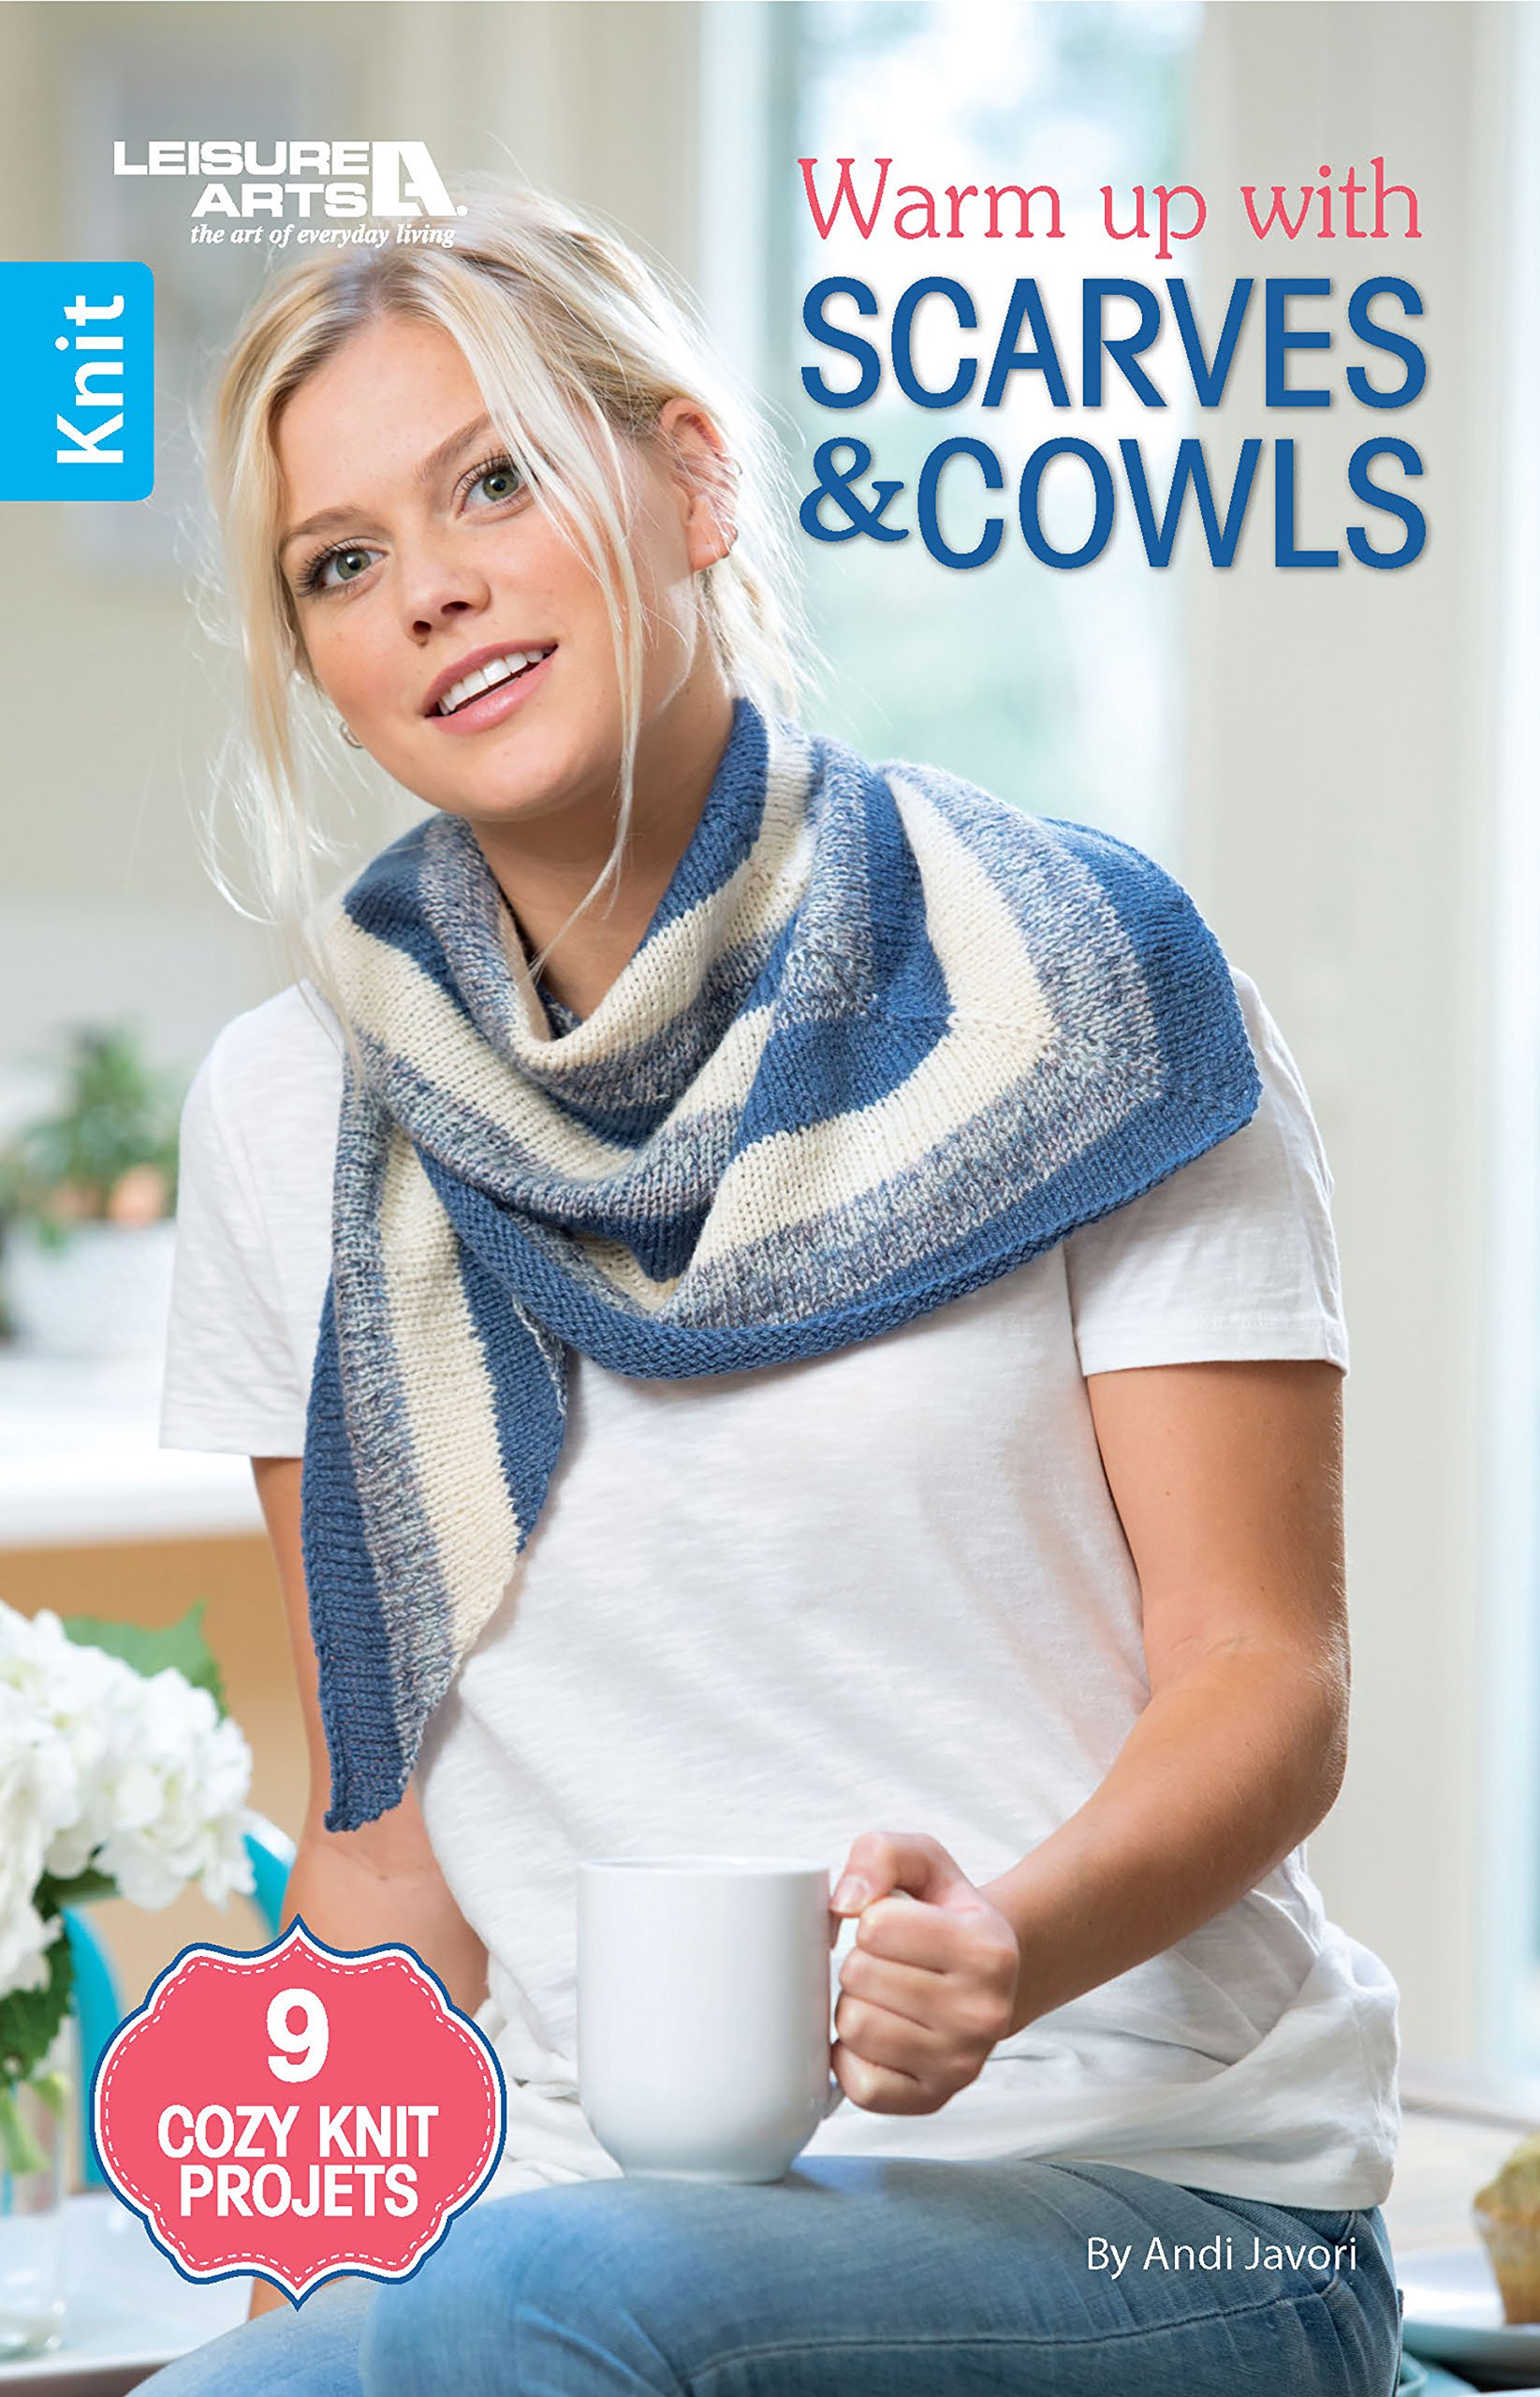 Warm up with Scarves & Cowls: 9 Cozy Knit Projects Paperback – March 15, 2018 Andy Javori Leisure Arts 1464771847 4336925575